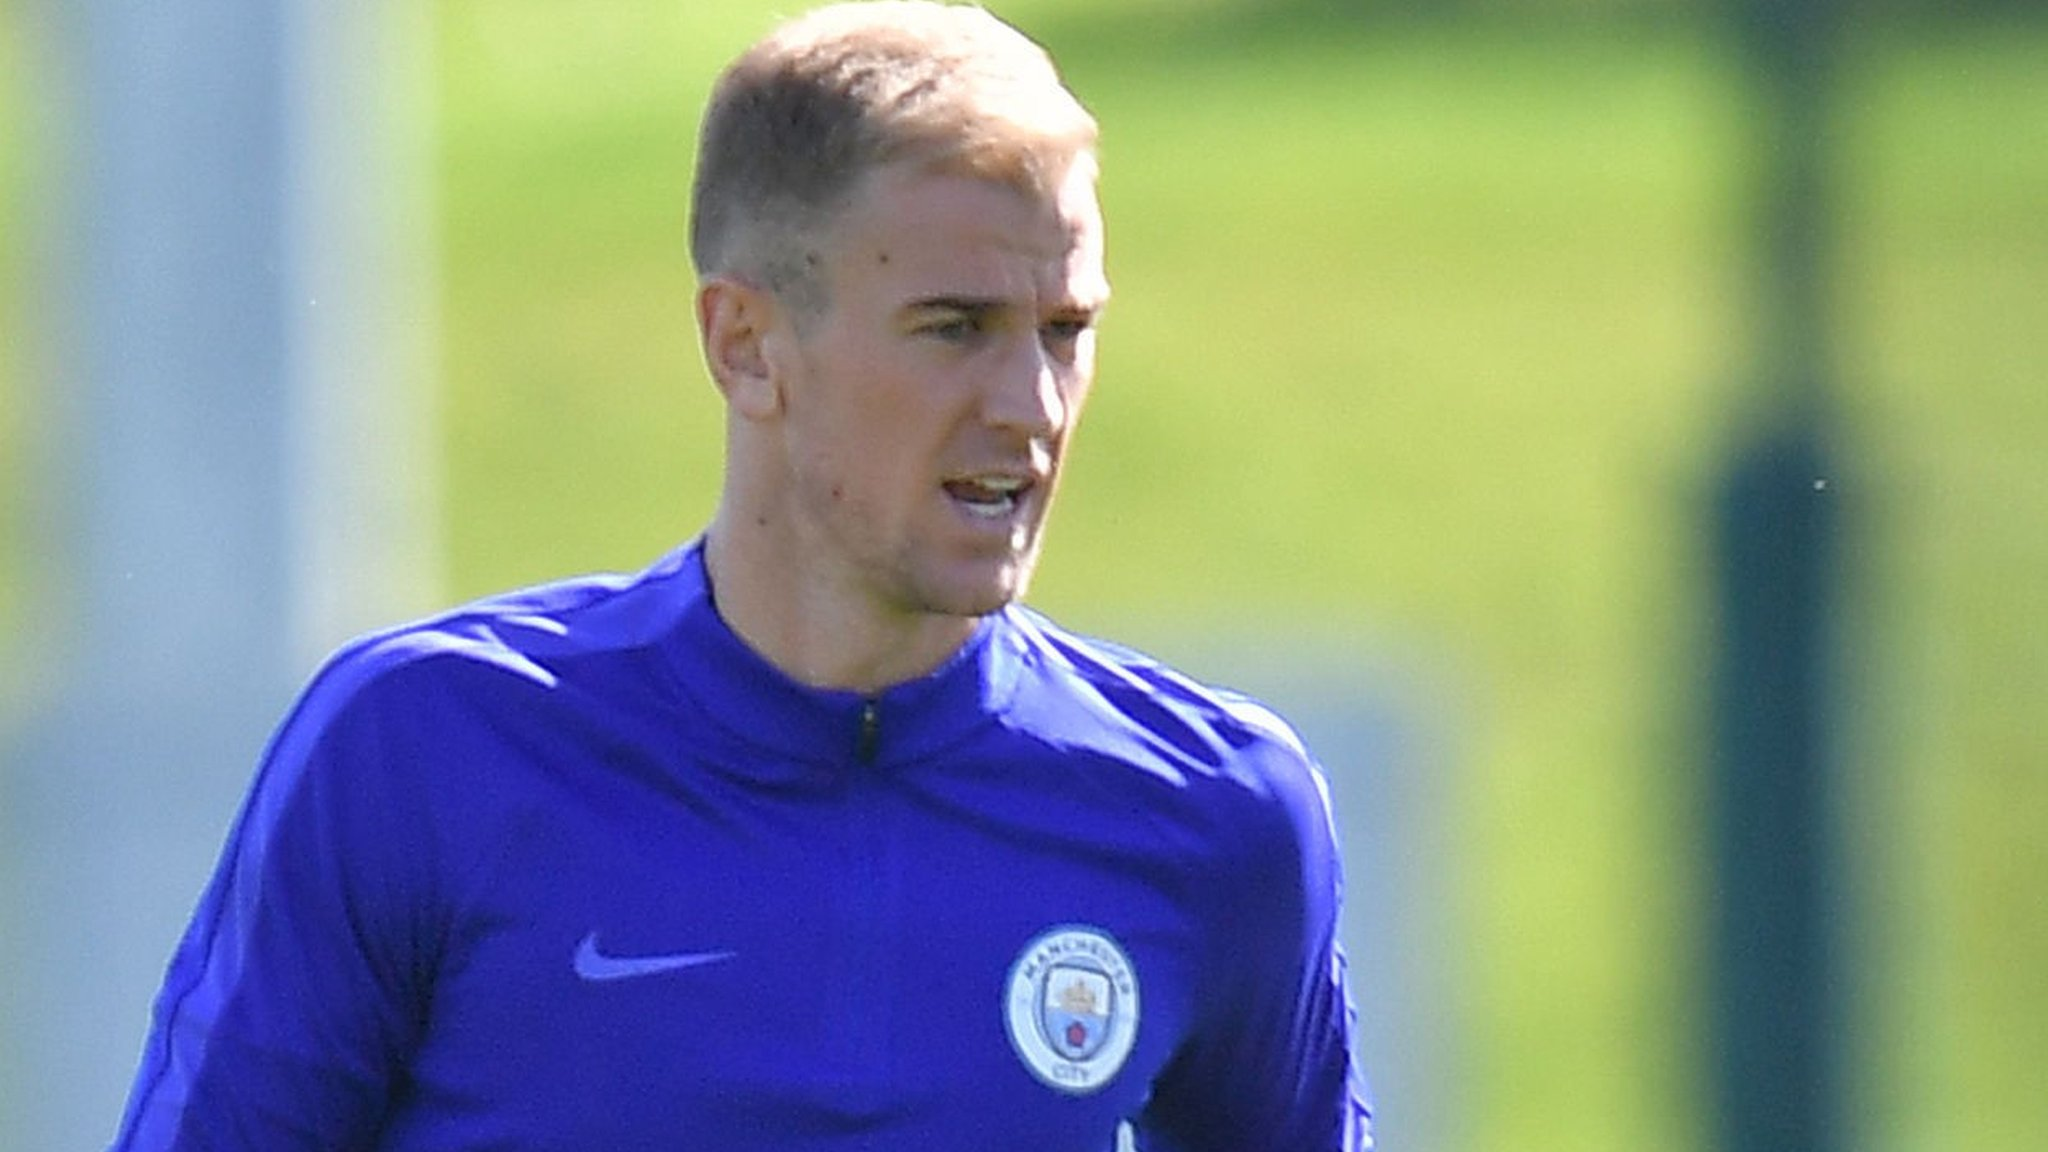 Man City's Hart to play first game of season